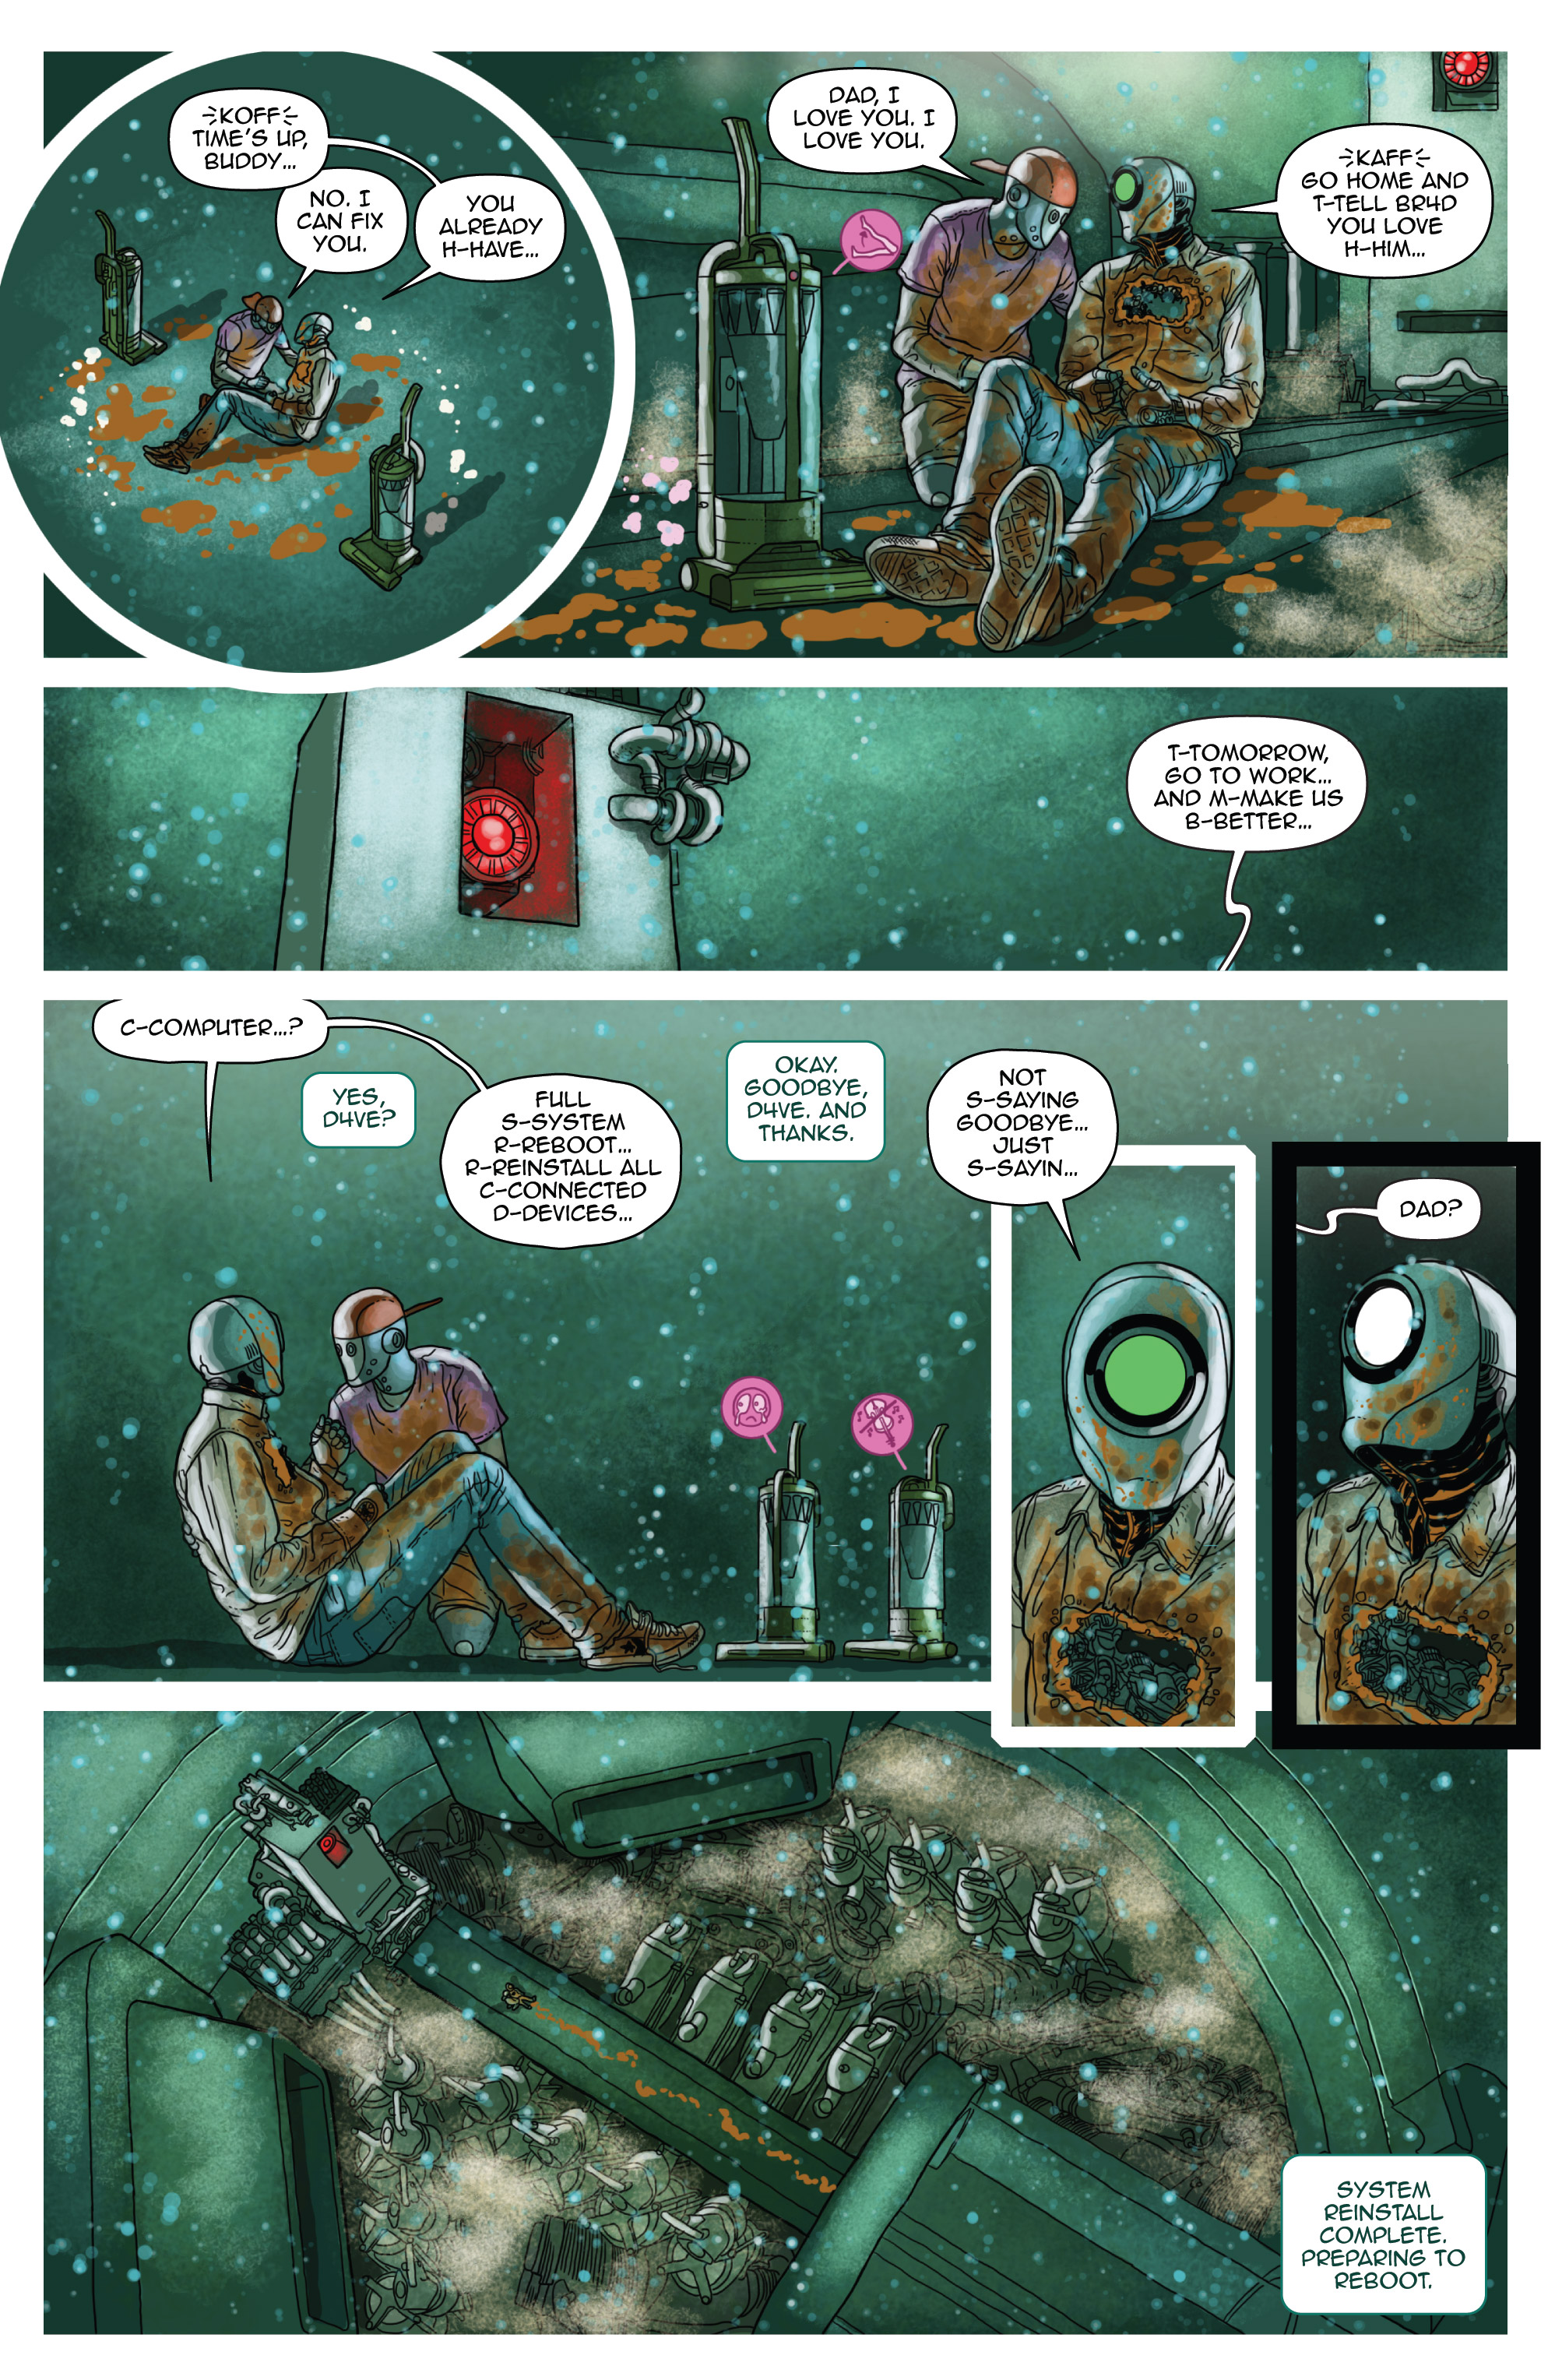 Read online D4VEocracy comic -  Issue #4 - 22